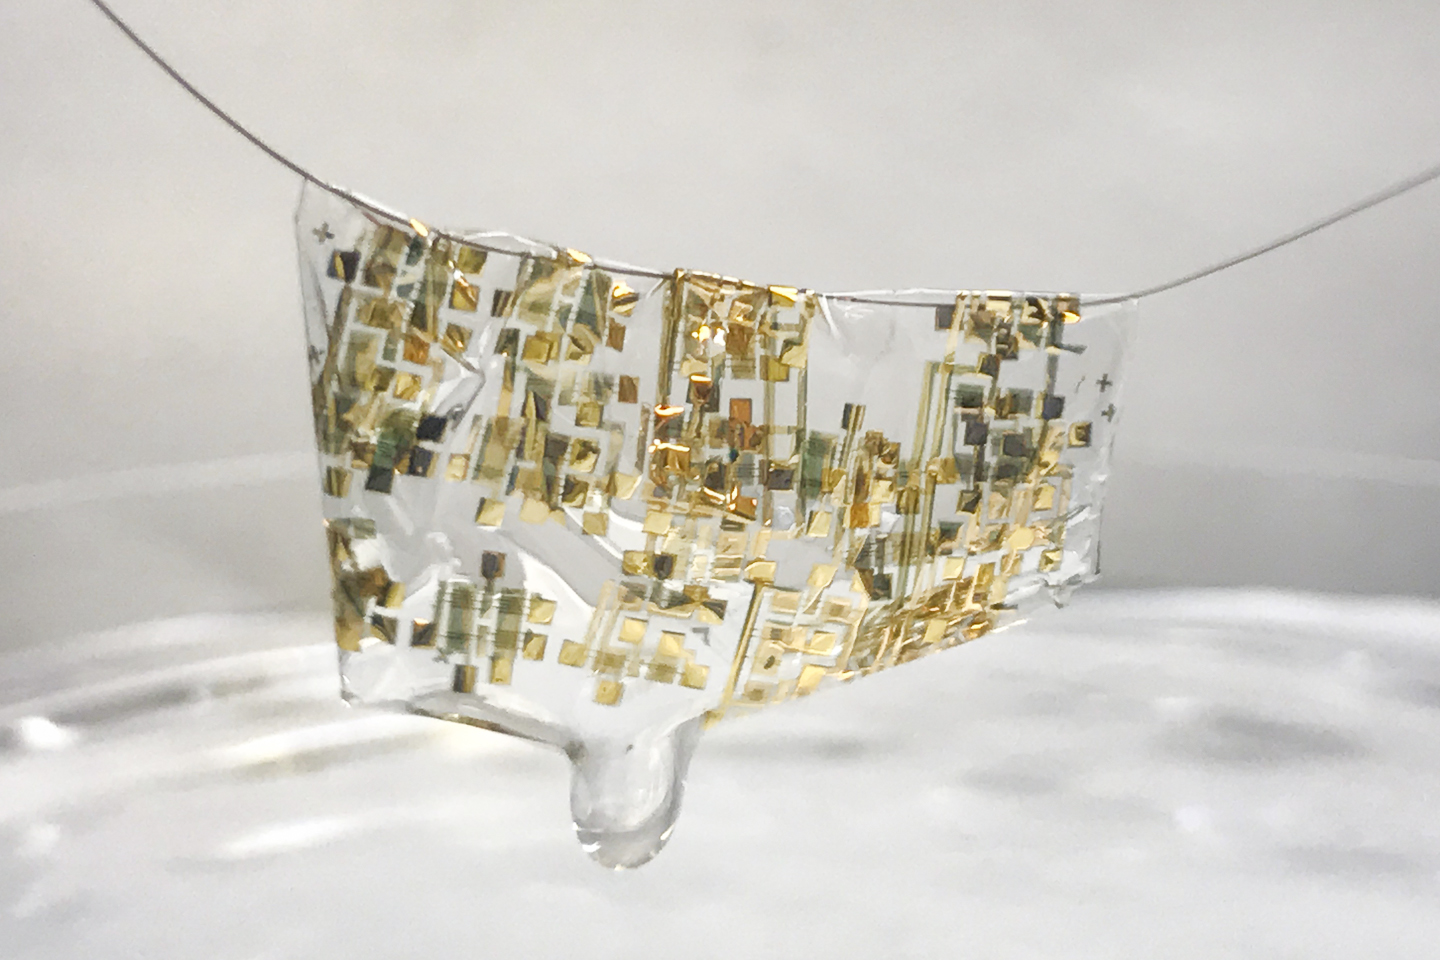 Flexible, biodegradable semiconductor on a human hair